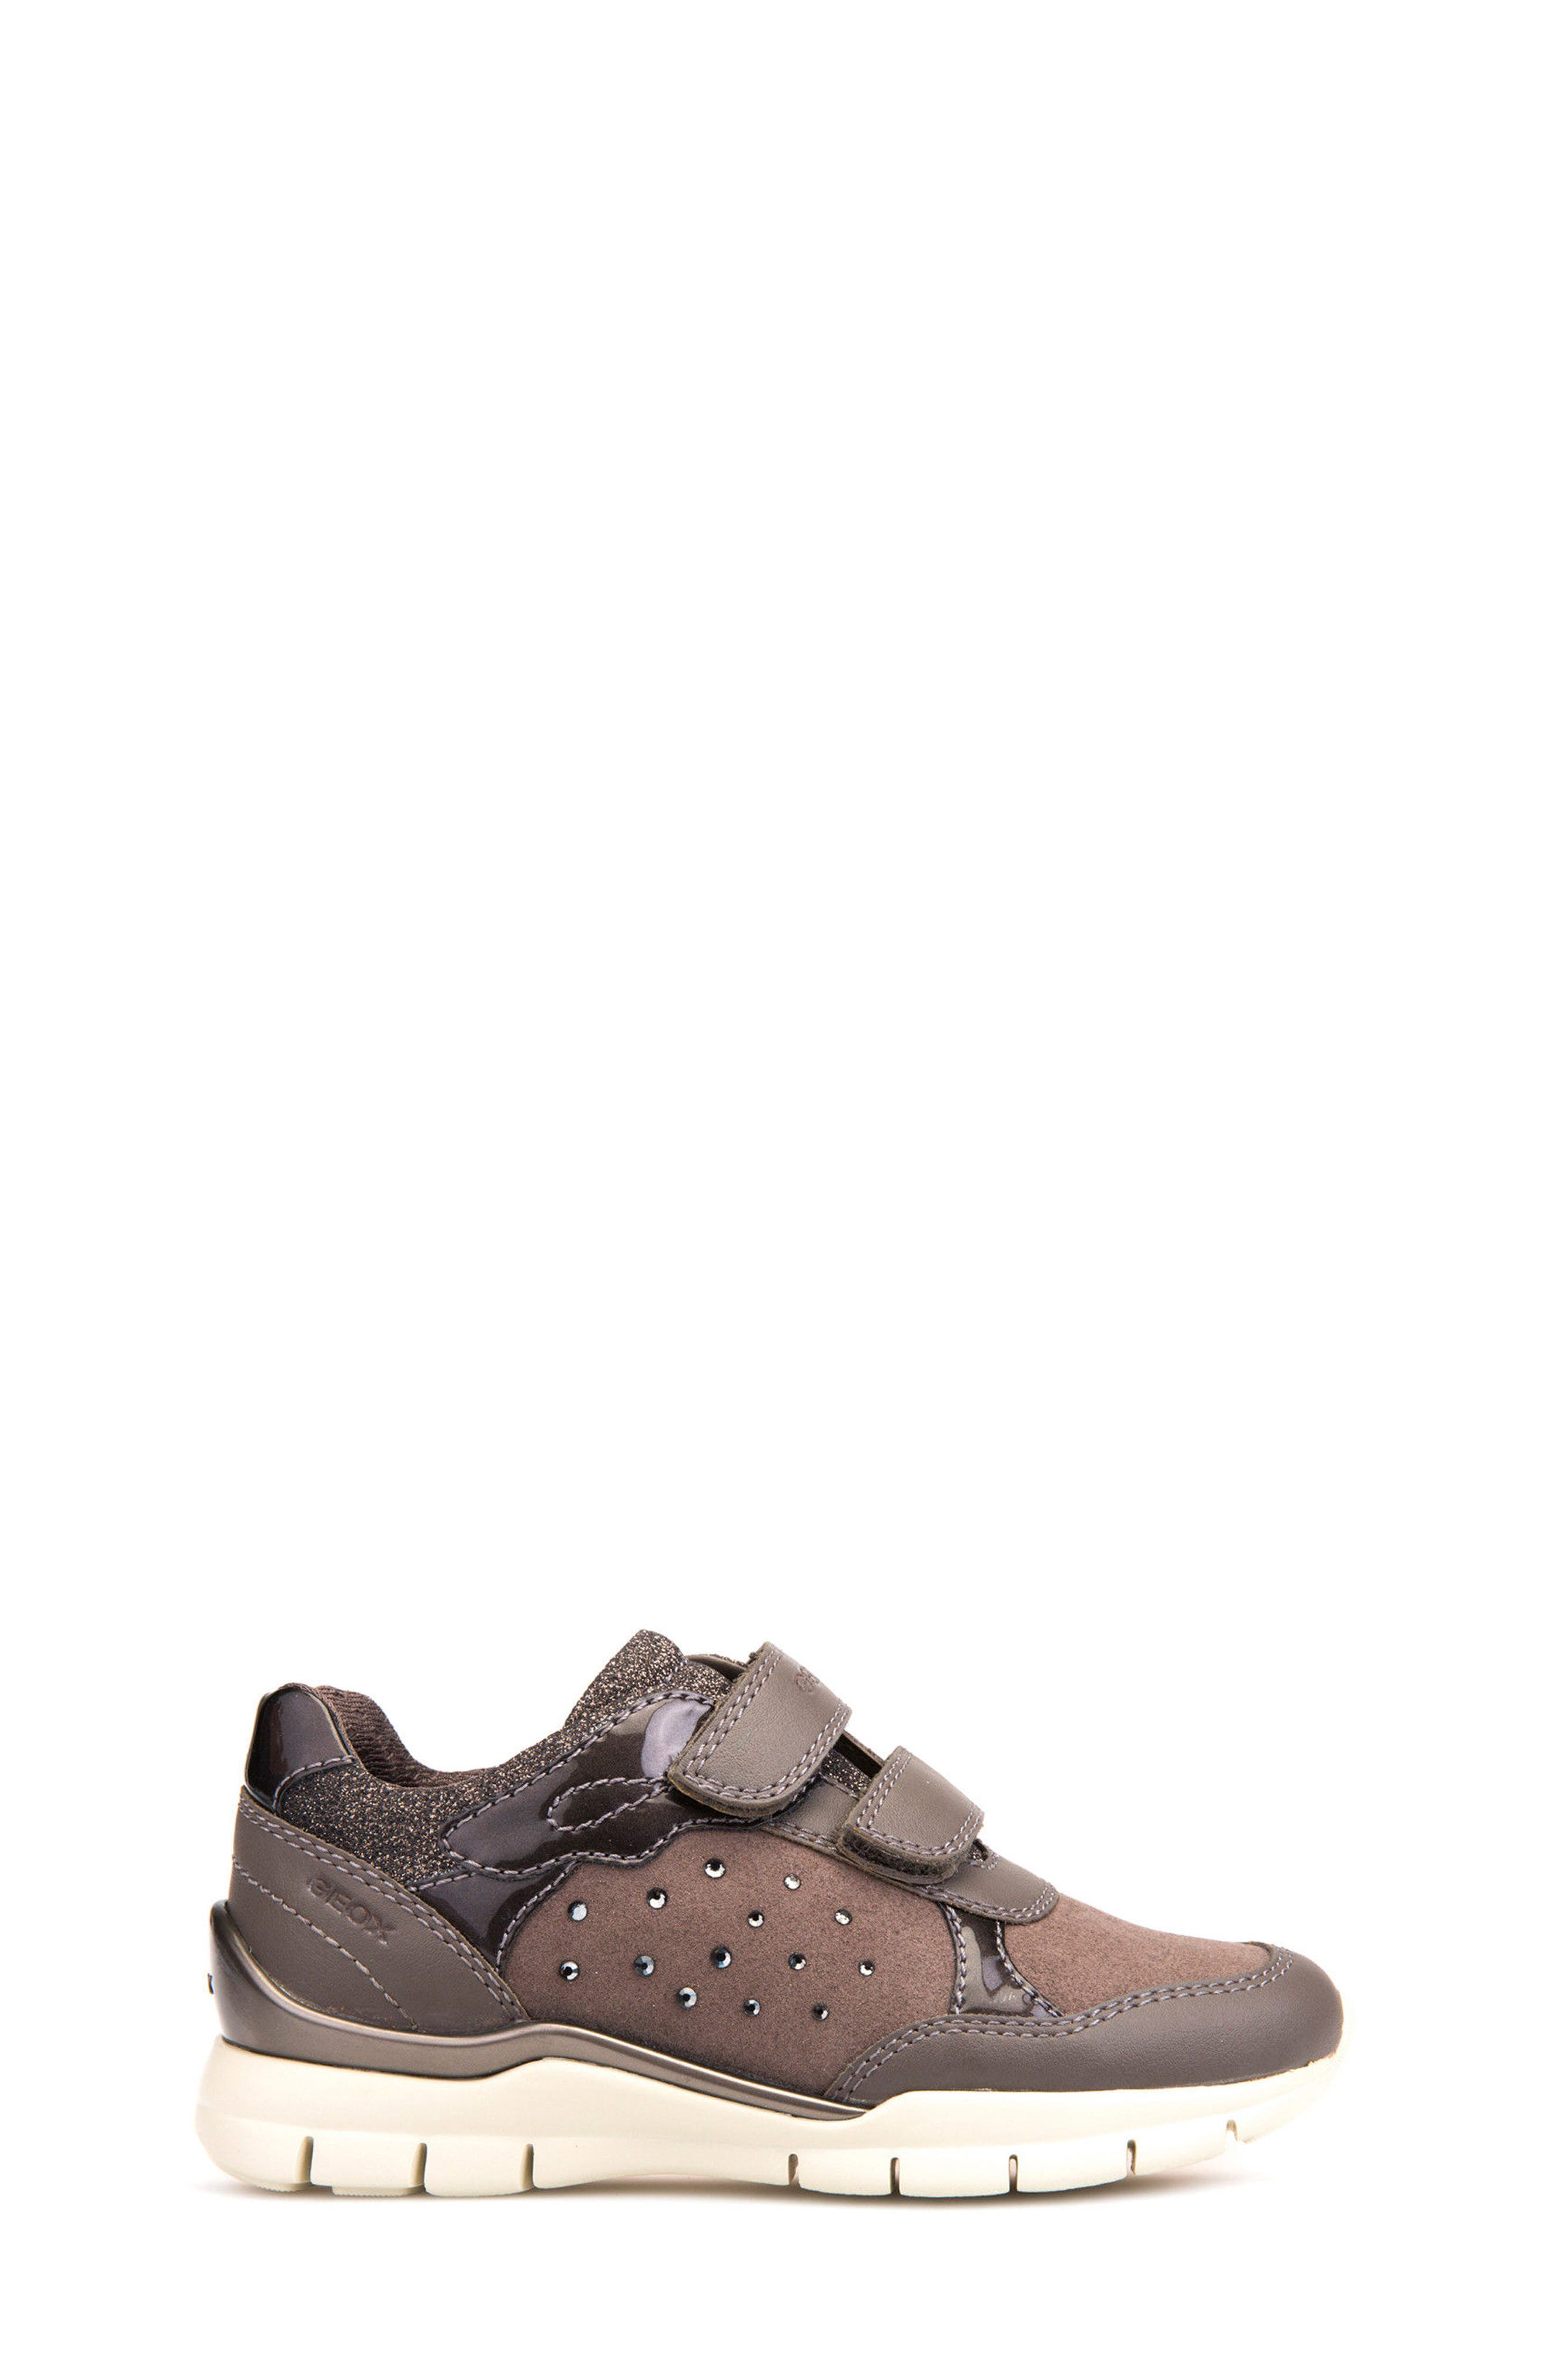 Sukie Sneaker,                             Alternate thumbnail 3, color,                             Dark Beige